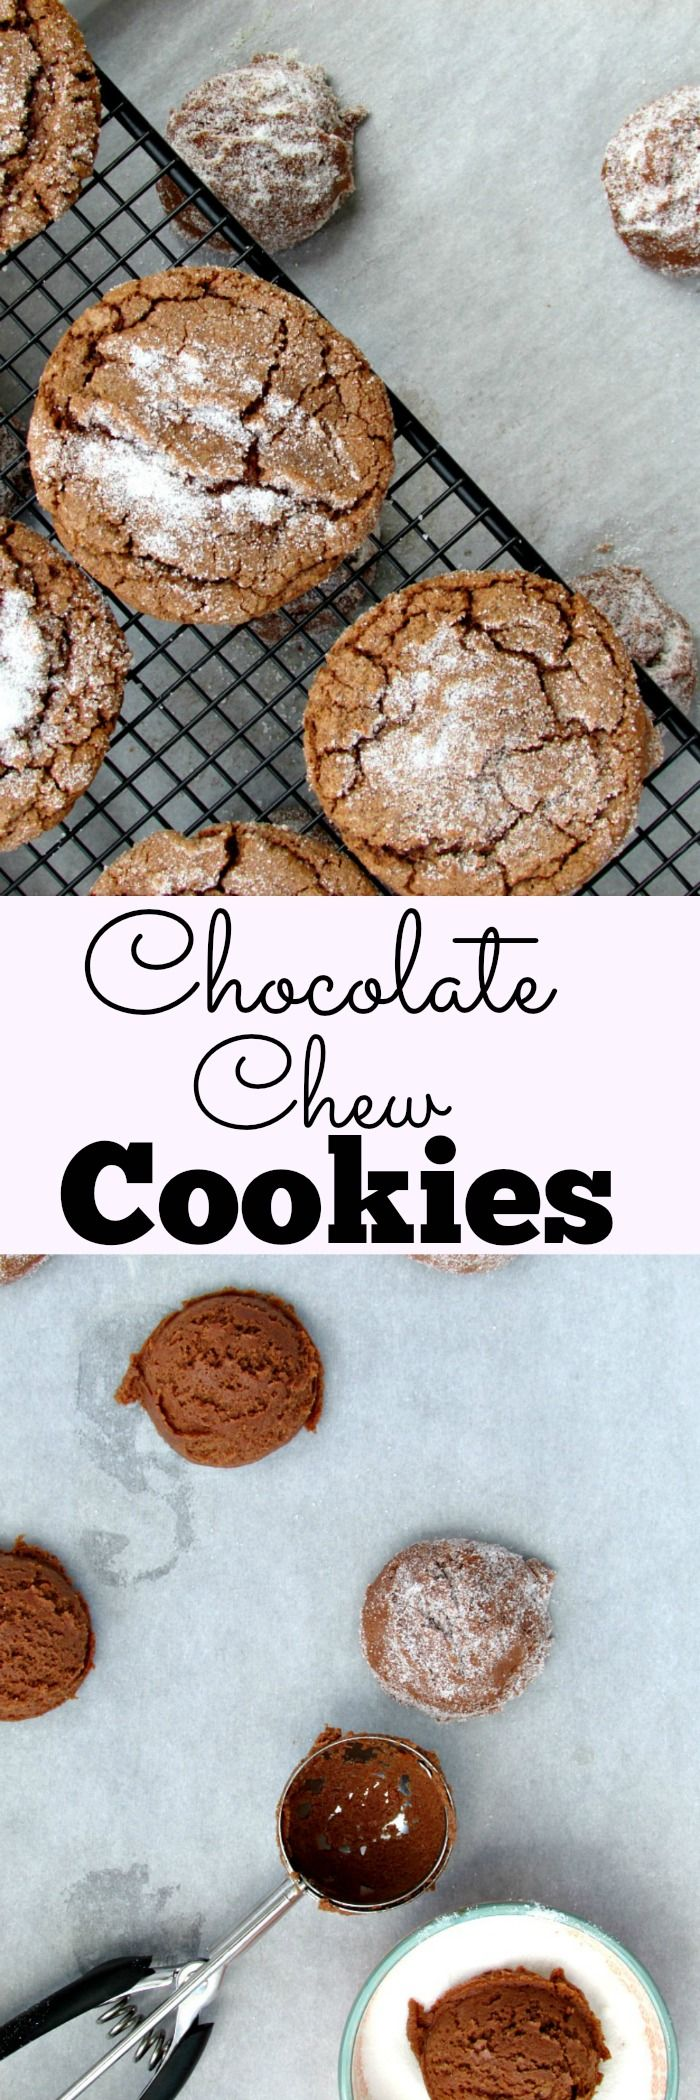 Chocolate Chew Cookies | Lou Lou Biscuit